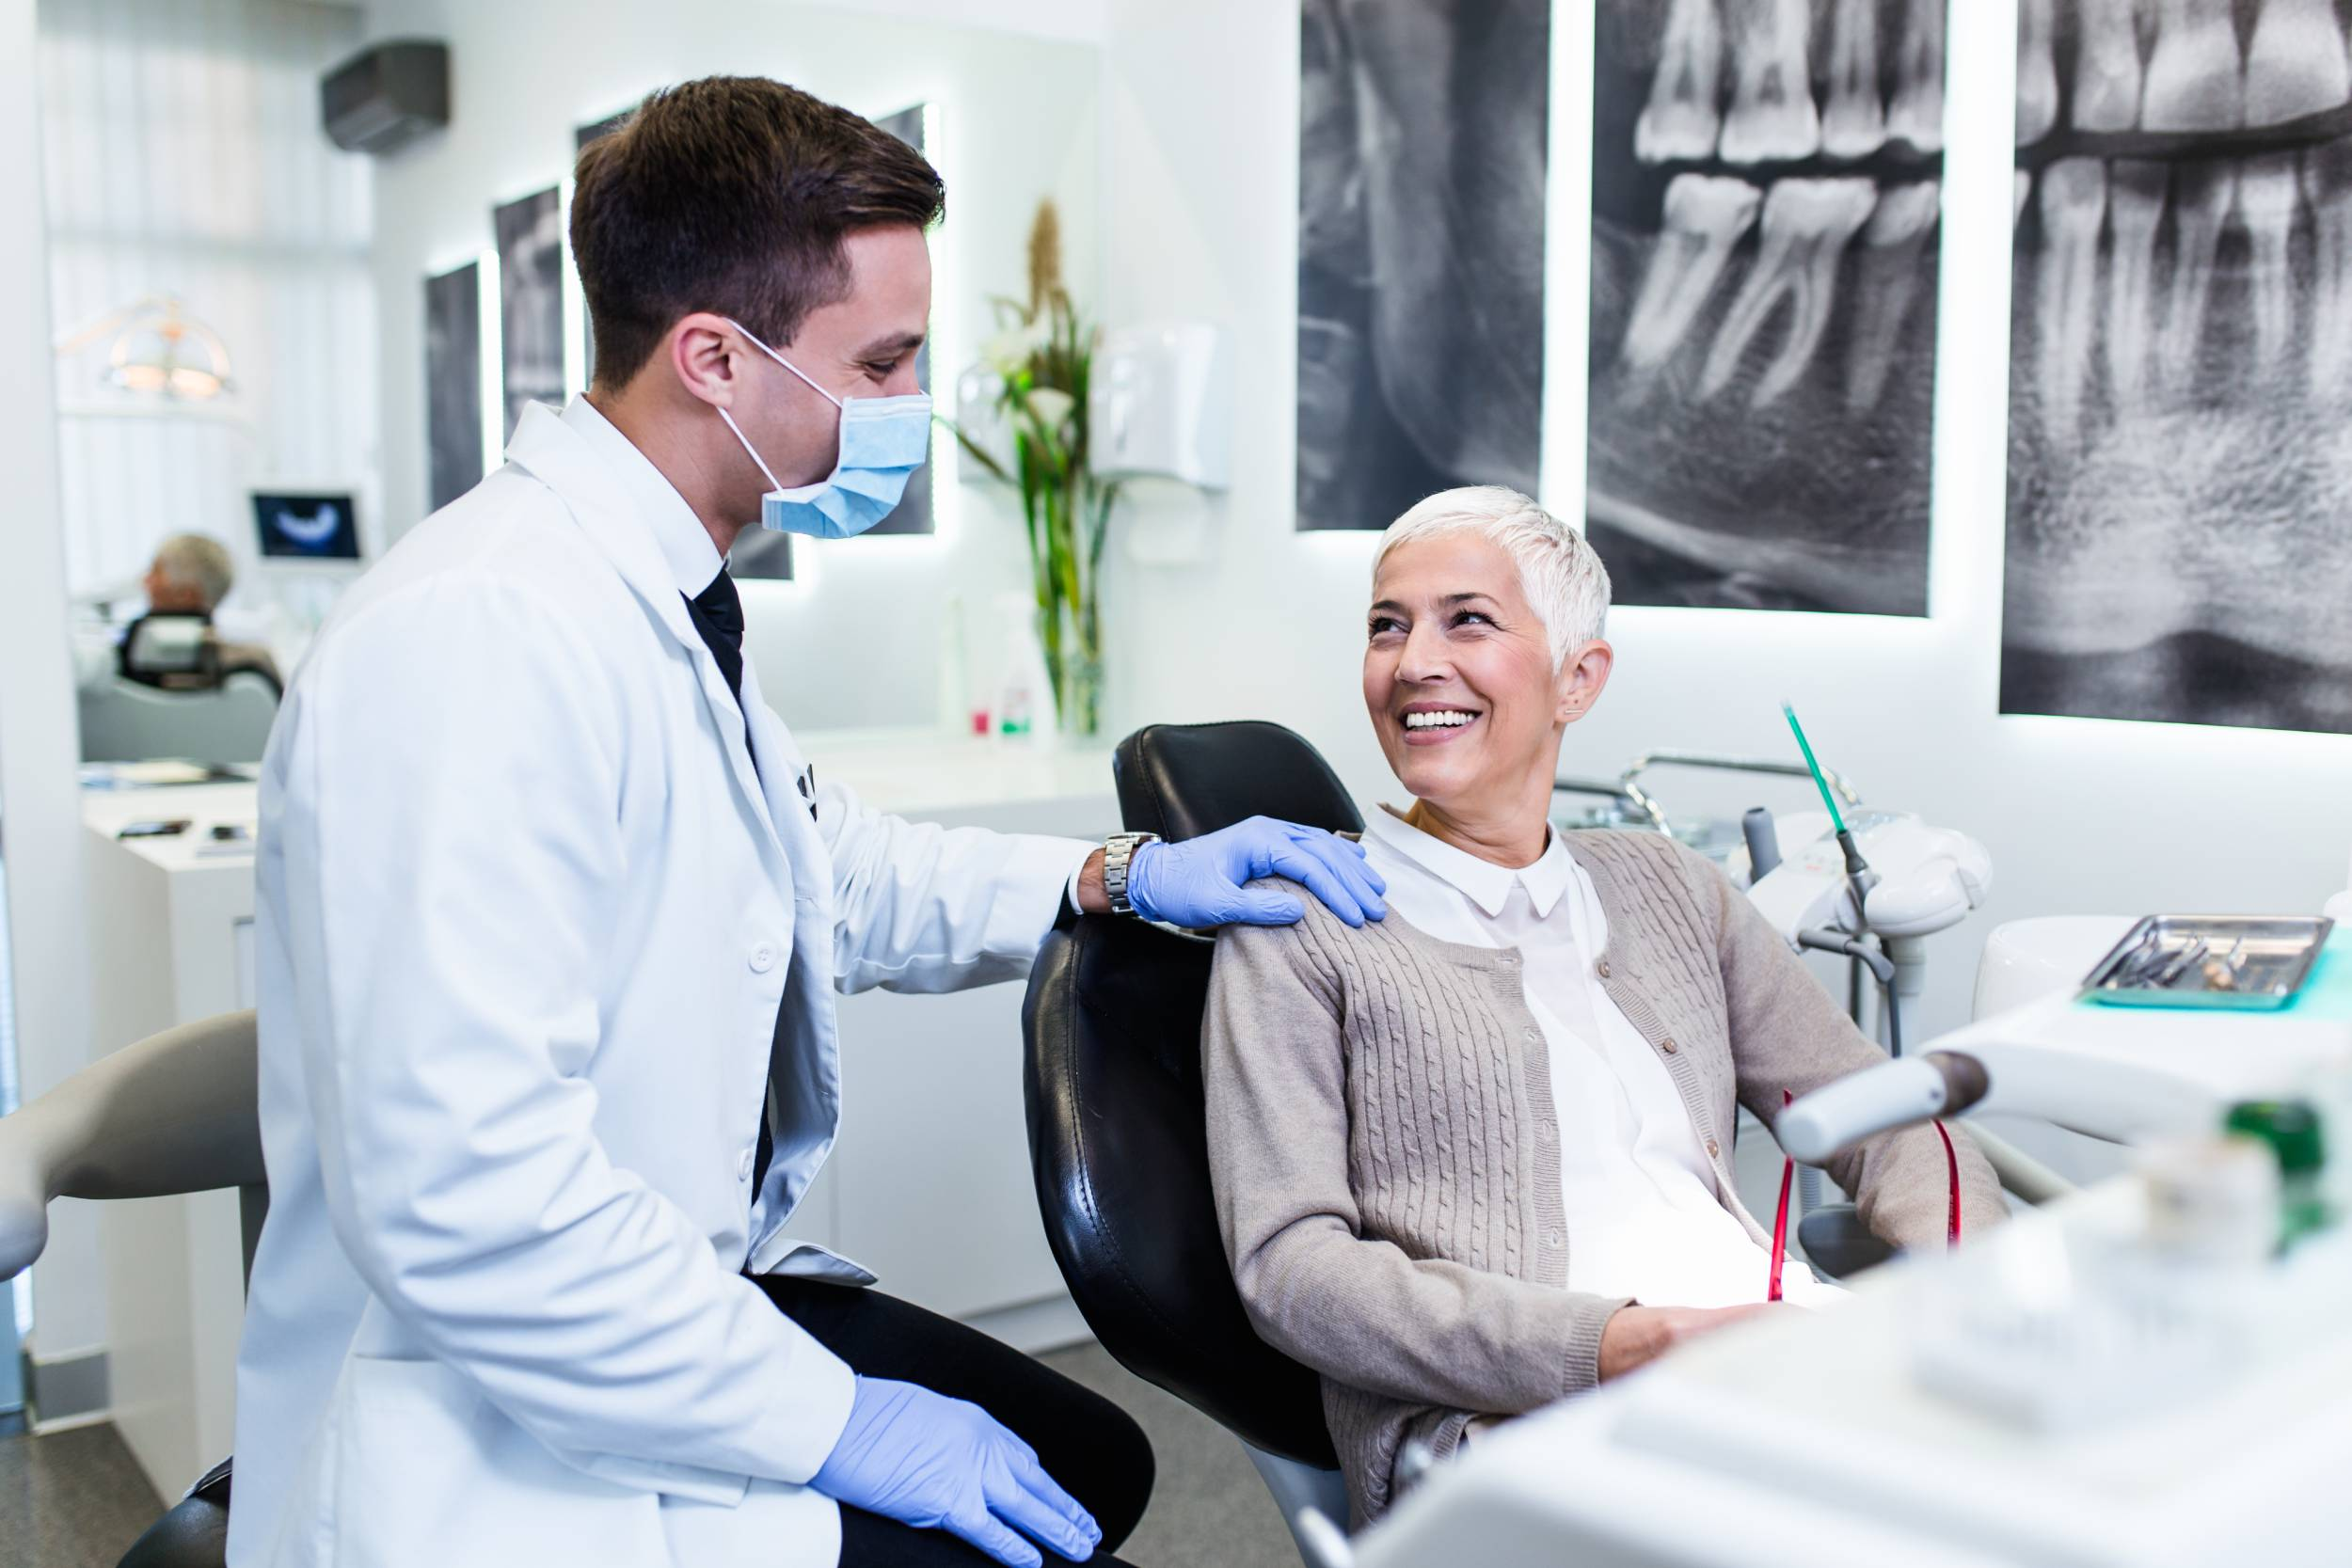 Post-Dental Implant Procedure What to Expect